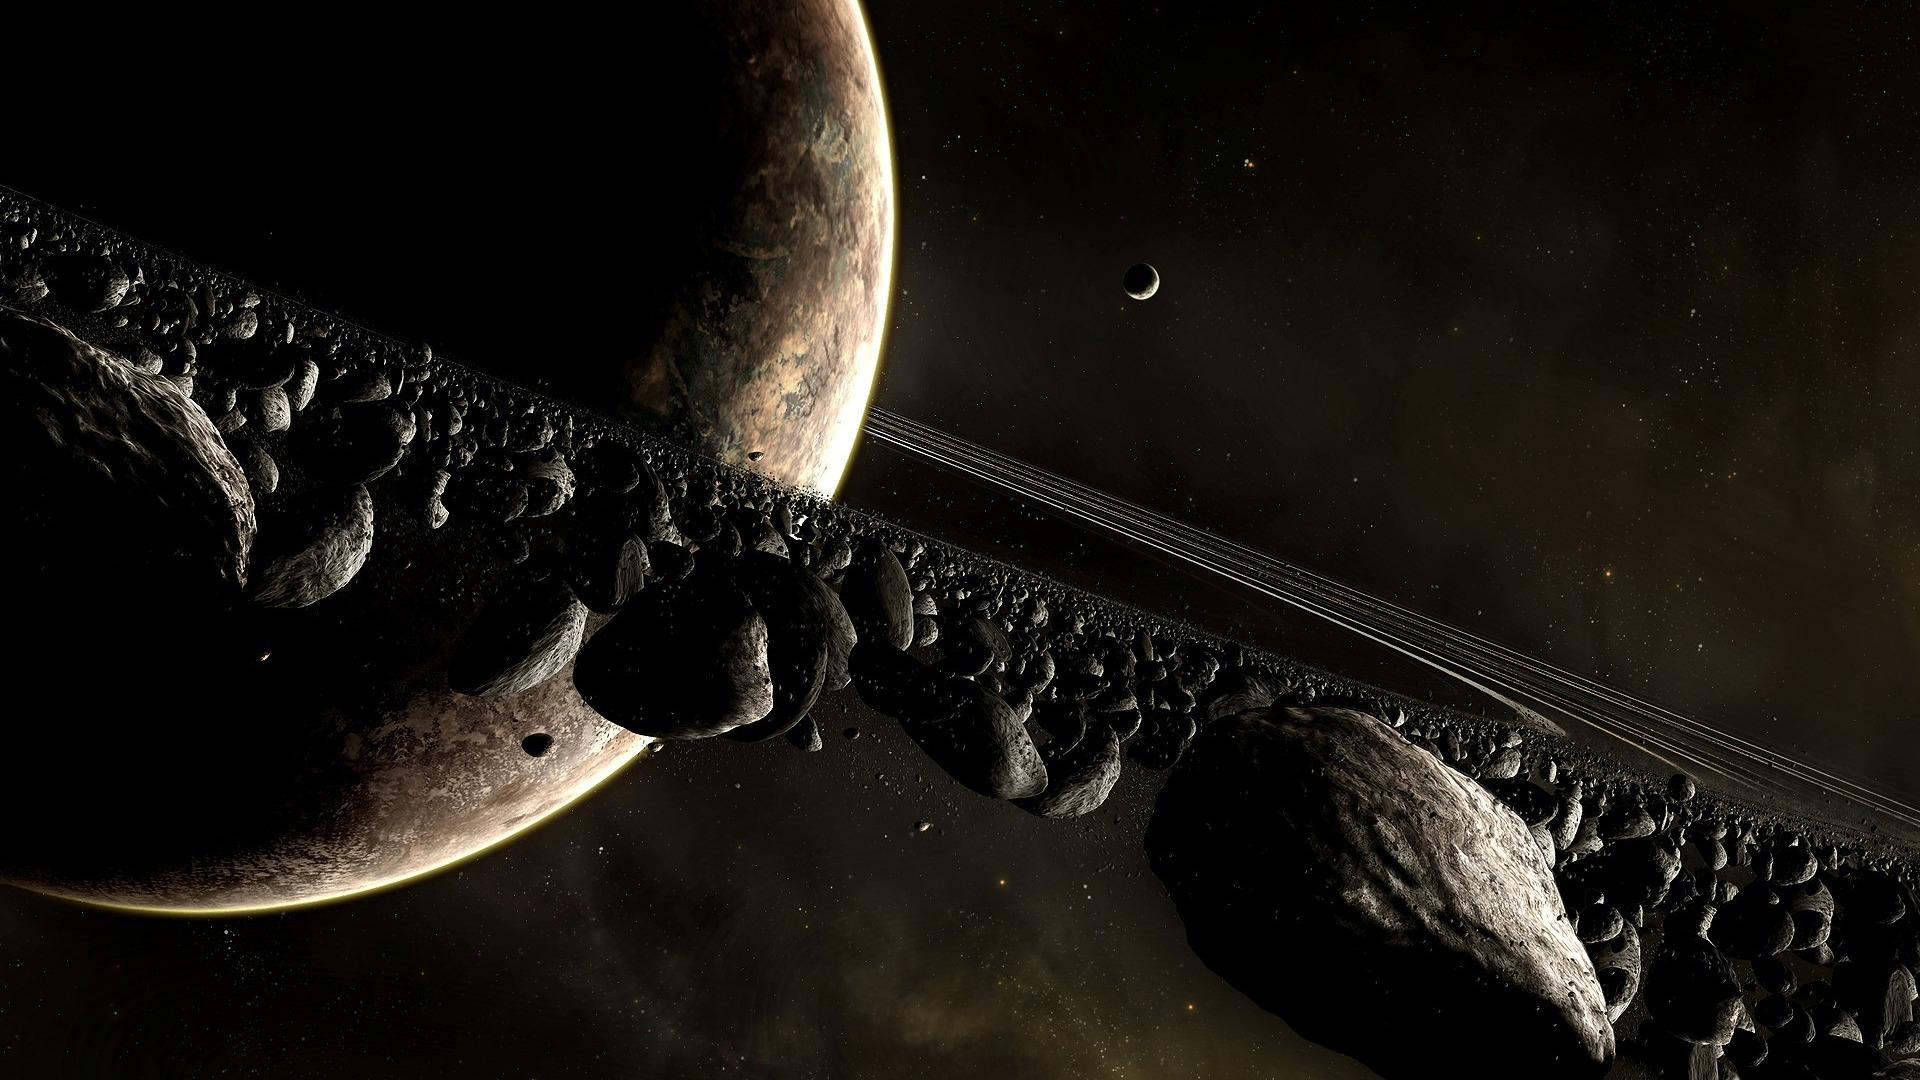 Wallpaper space hd gratuit t l charger sur ngn mag for Fond ecran smartphone full hd